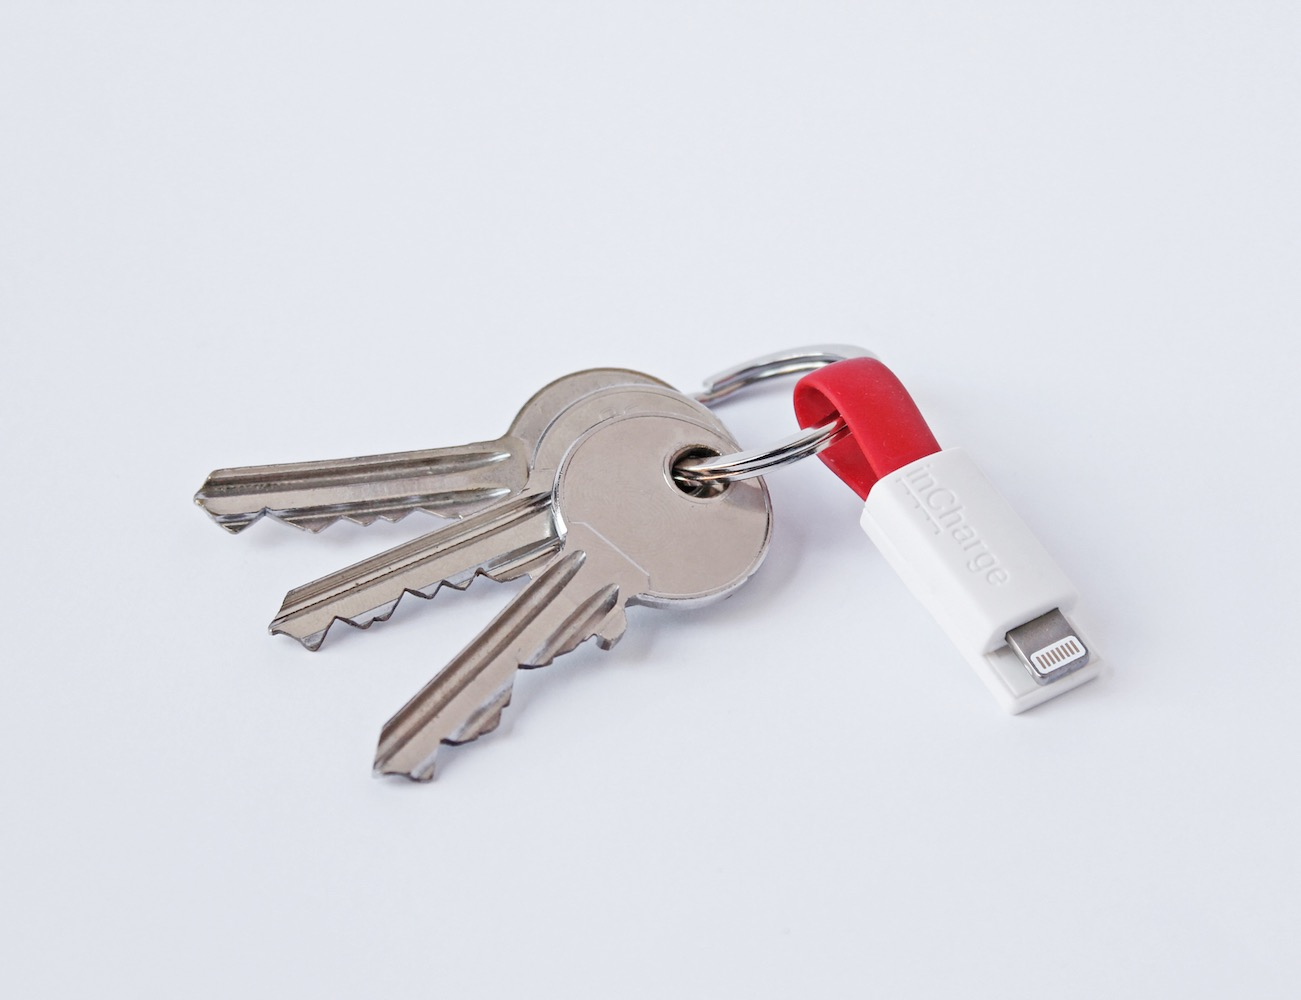 inCharge – The Smallest Keyring Cable